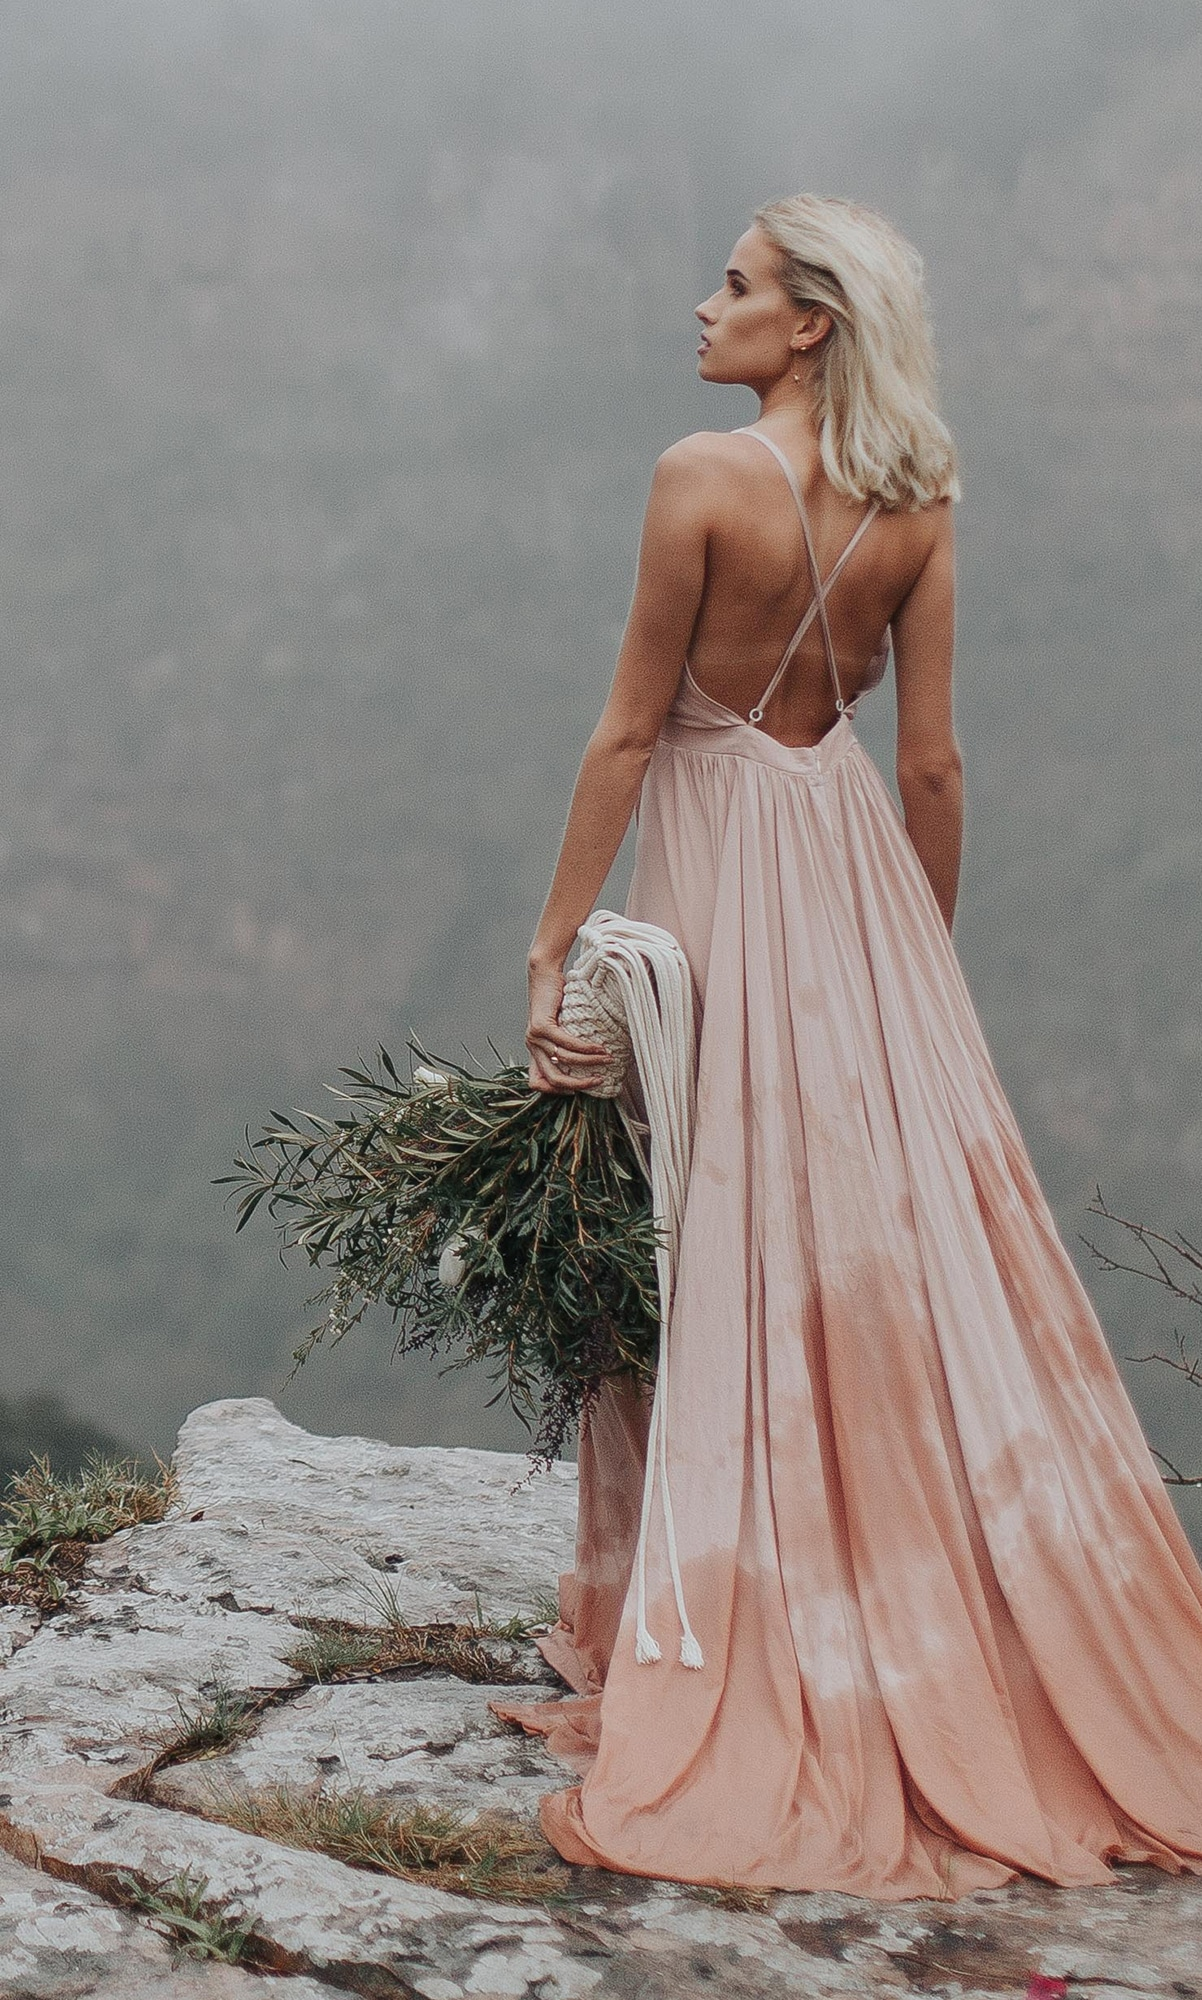 Oh Happy Day striking boho bride with blush dress and exposed back holding natural greenery bouquet